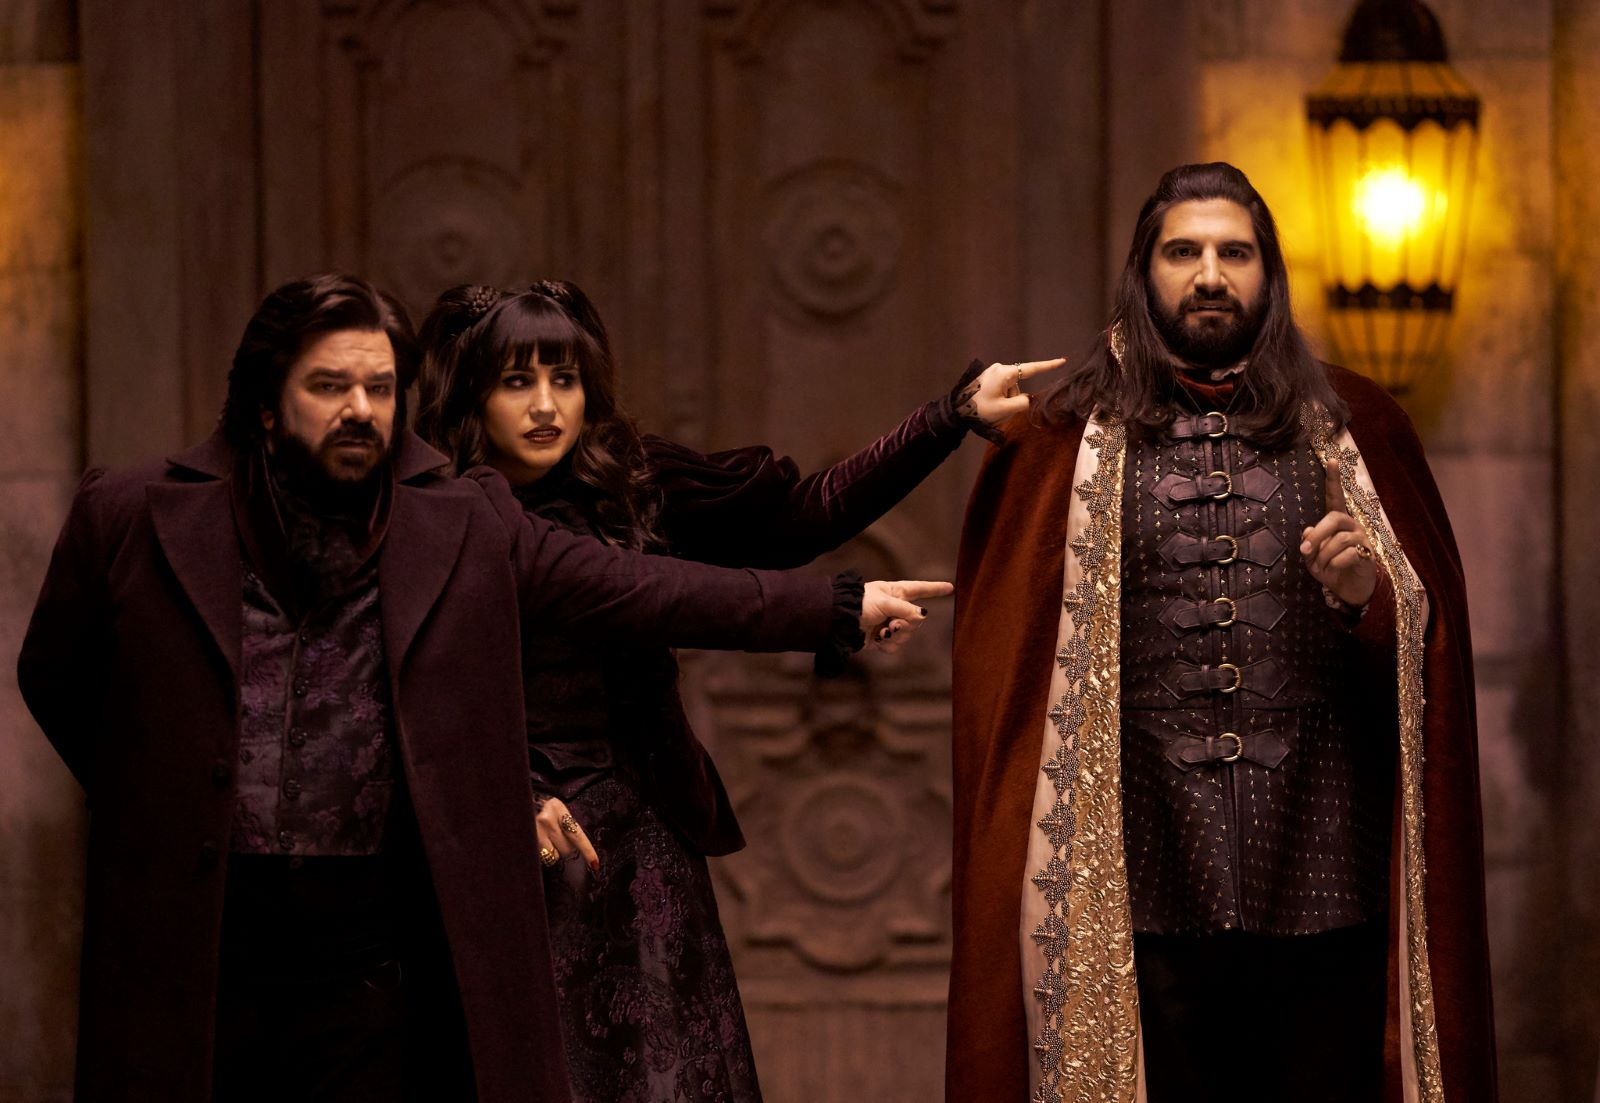 The vampire comedy from Taiki Watiti has been transformed into a black comedy for the ages. You need to be watching 'What we do in the Shadows' on FX.